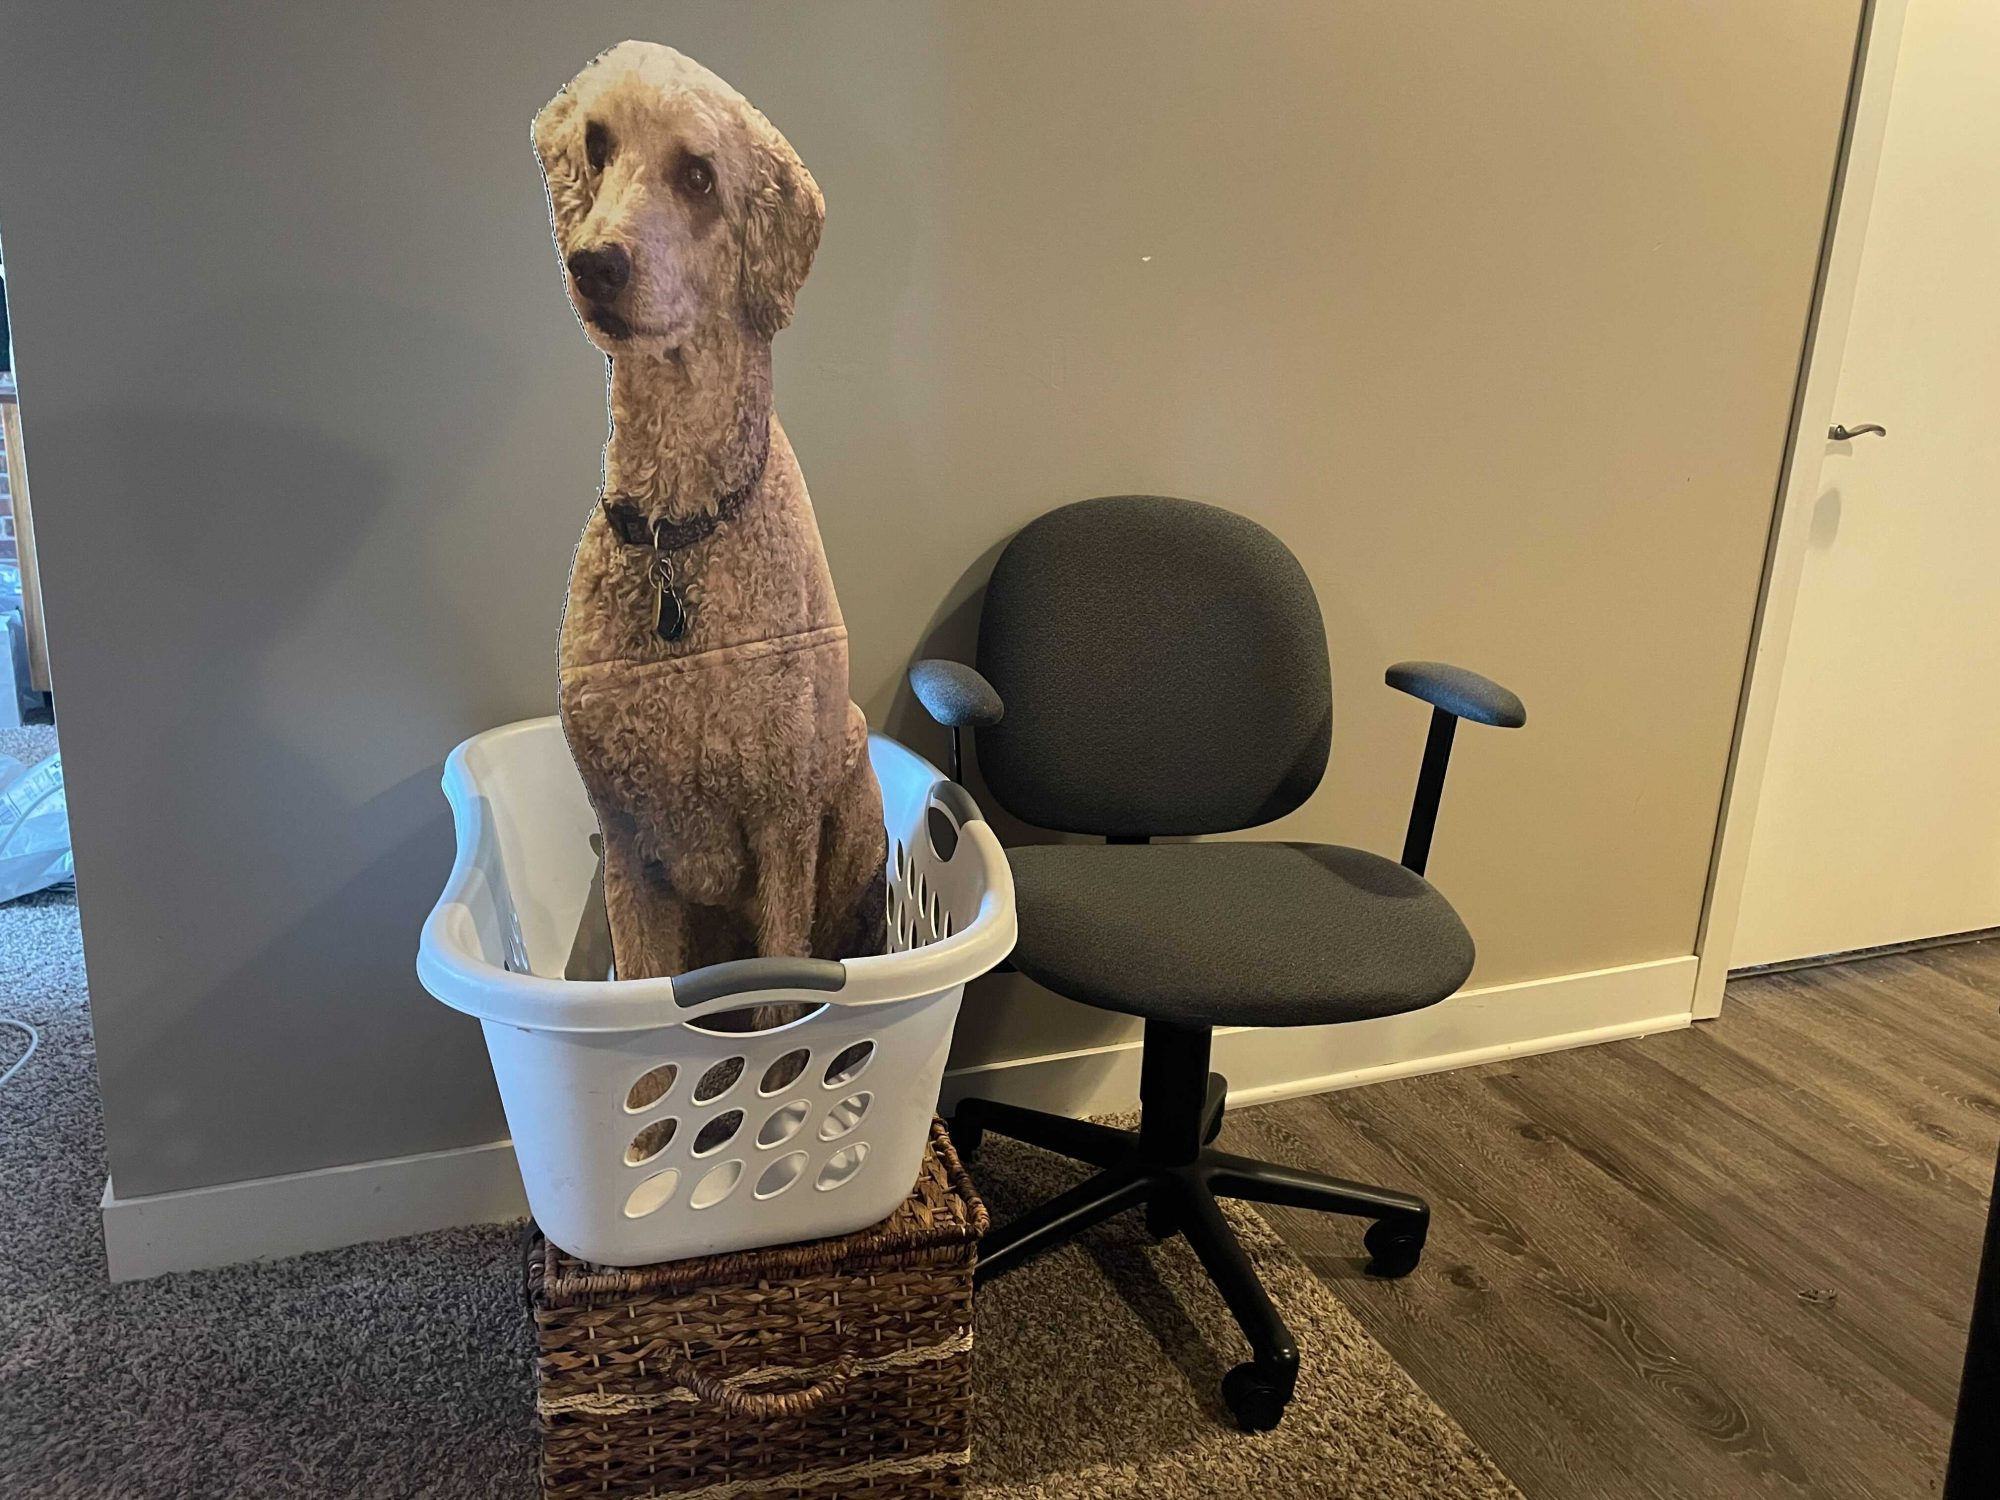 carboard cutout of poodle in laundry basket next to office chair